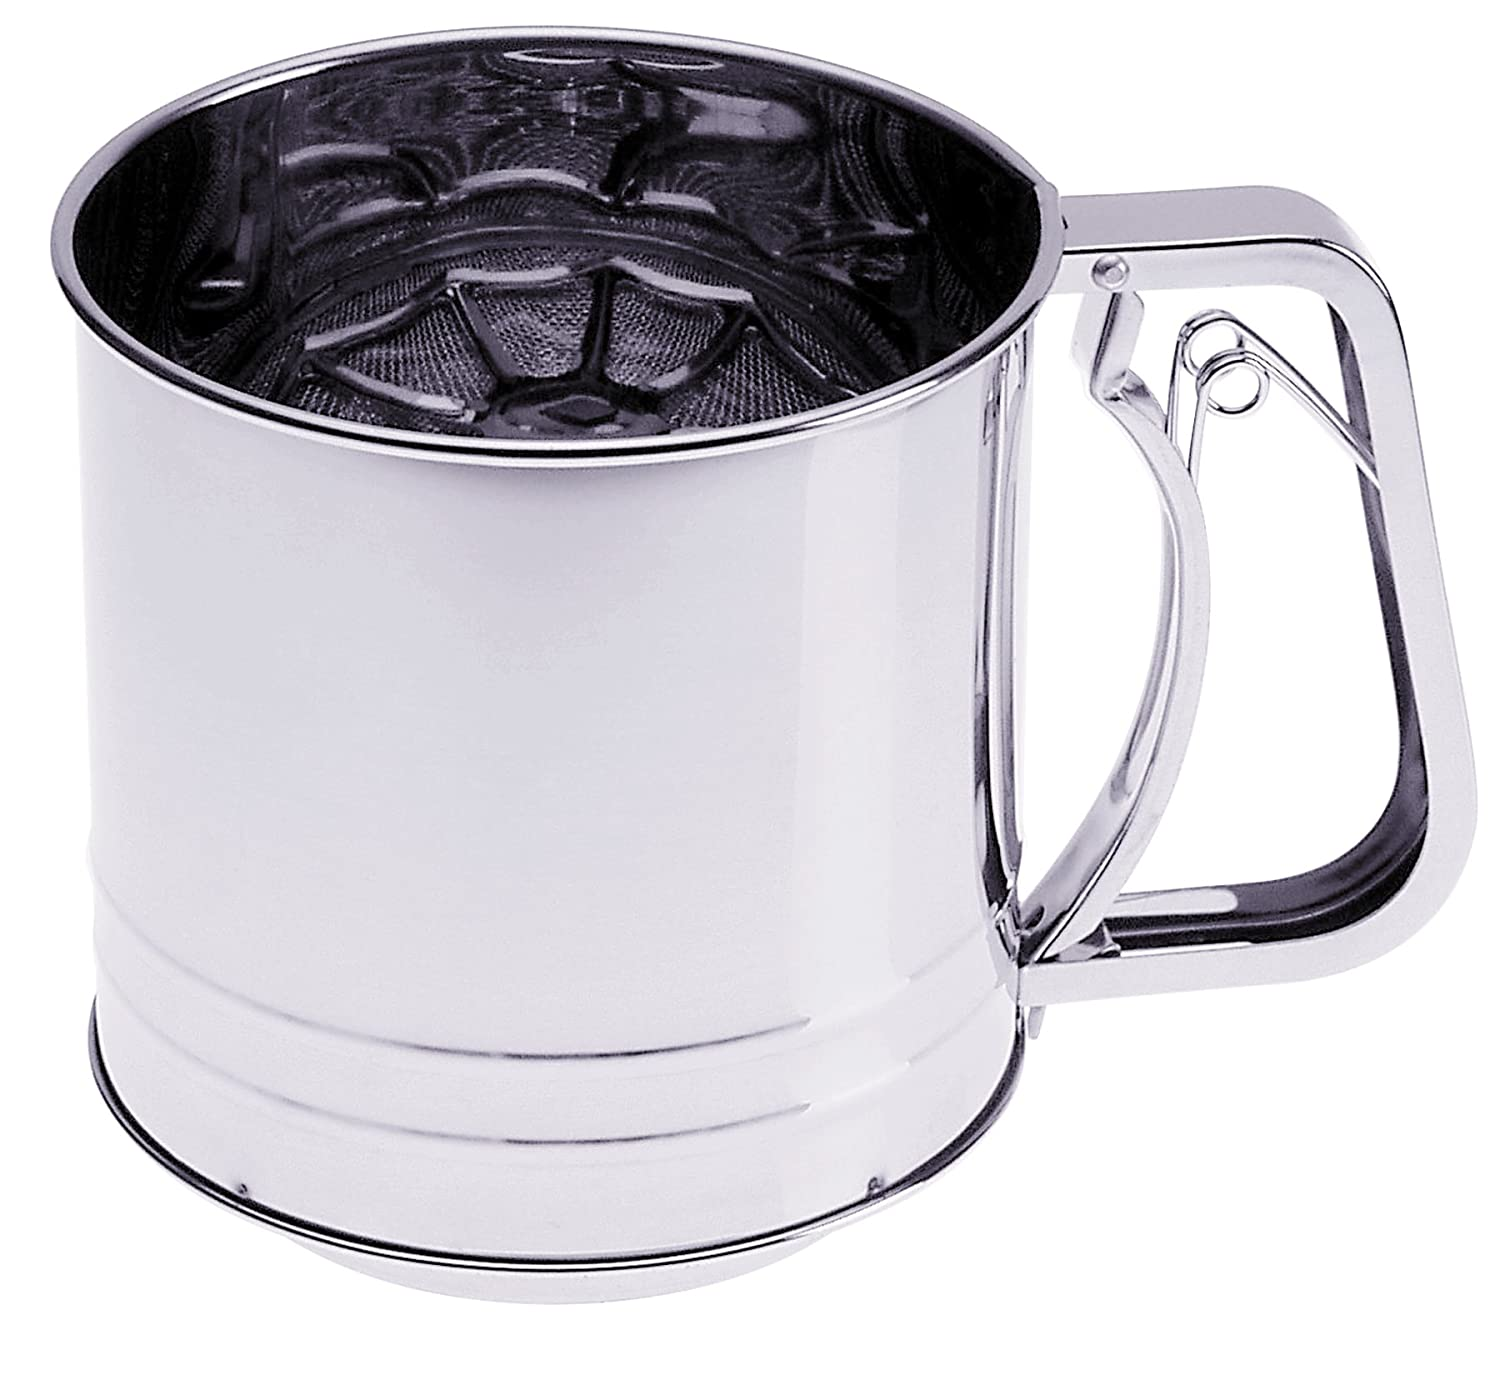 Prepworks from Progressive International GFS-5 Triple-Screen Stainless-Steel Flour Sifter, 5 Cup GFS5